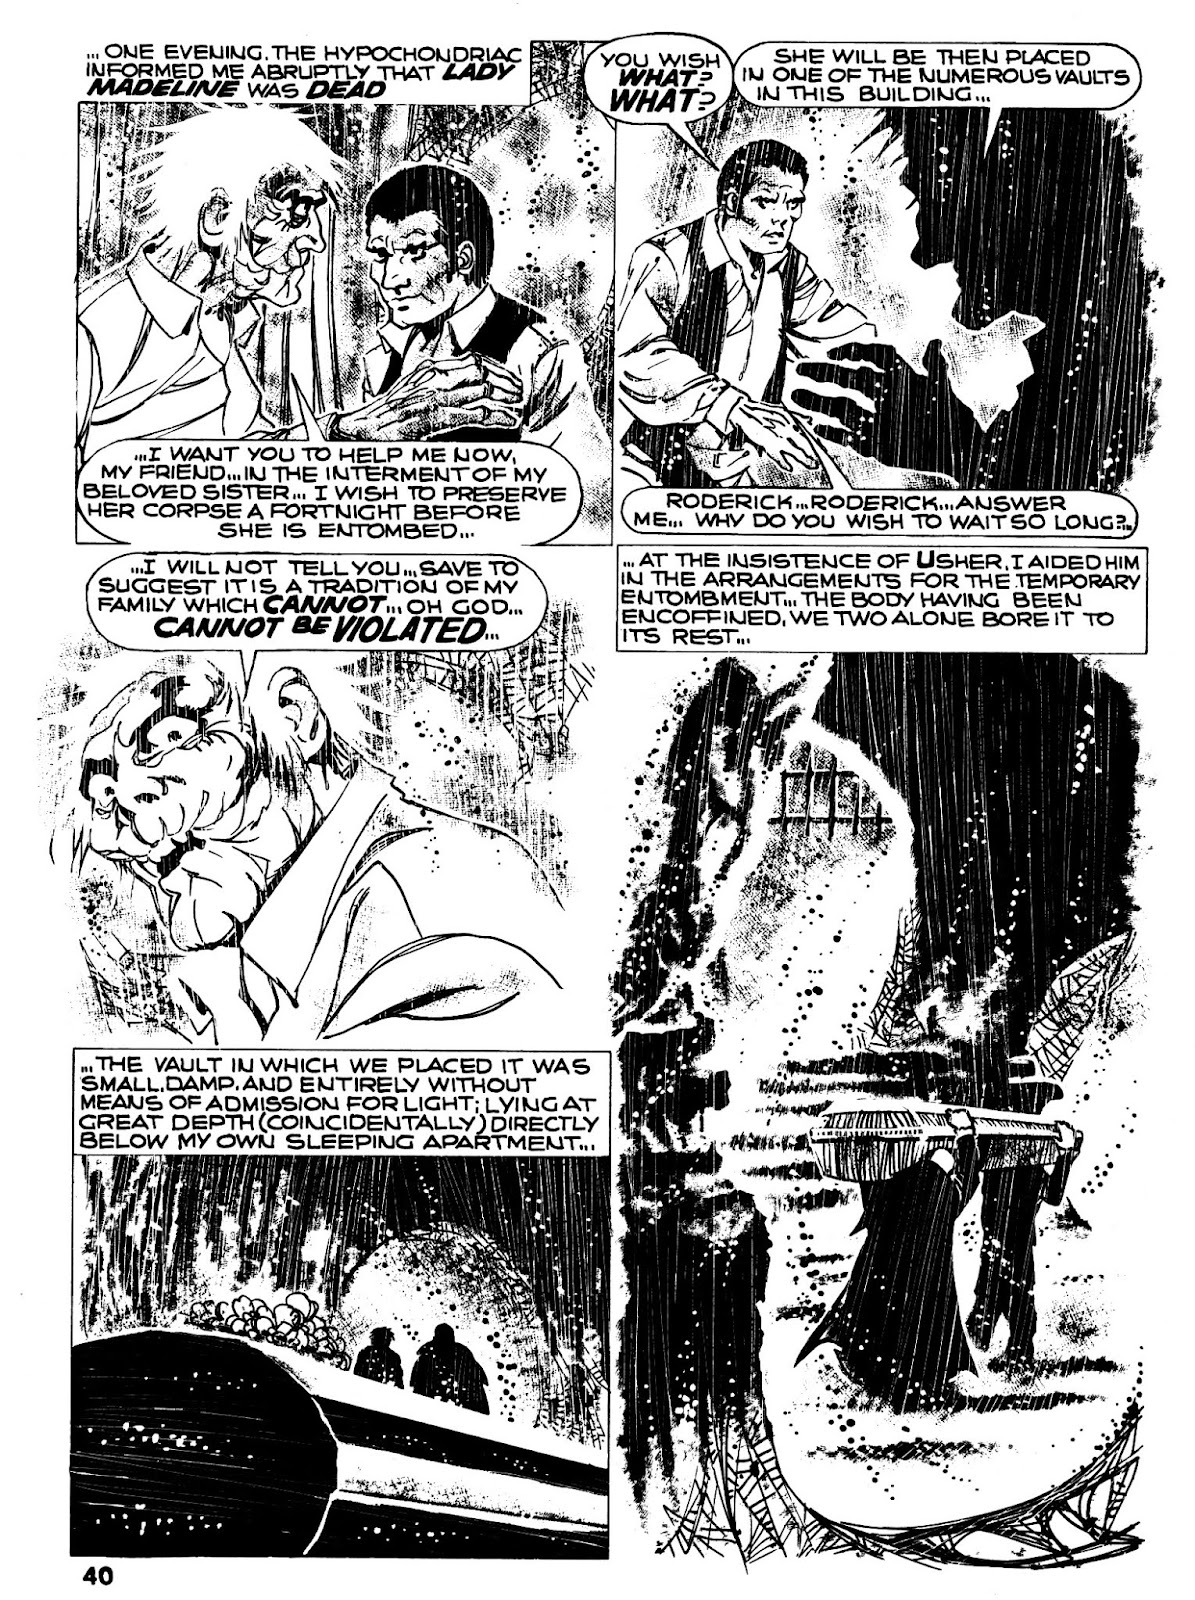 Scream (1973) issue 3 - Page 40